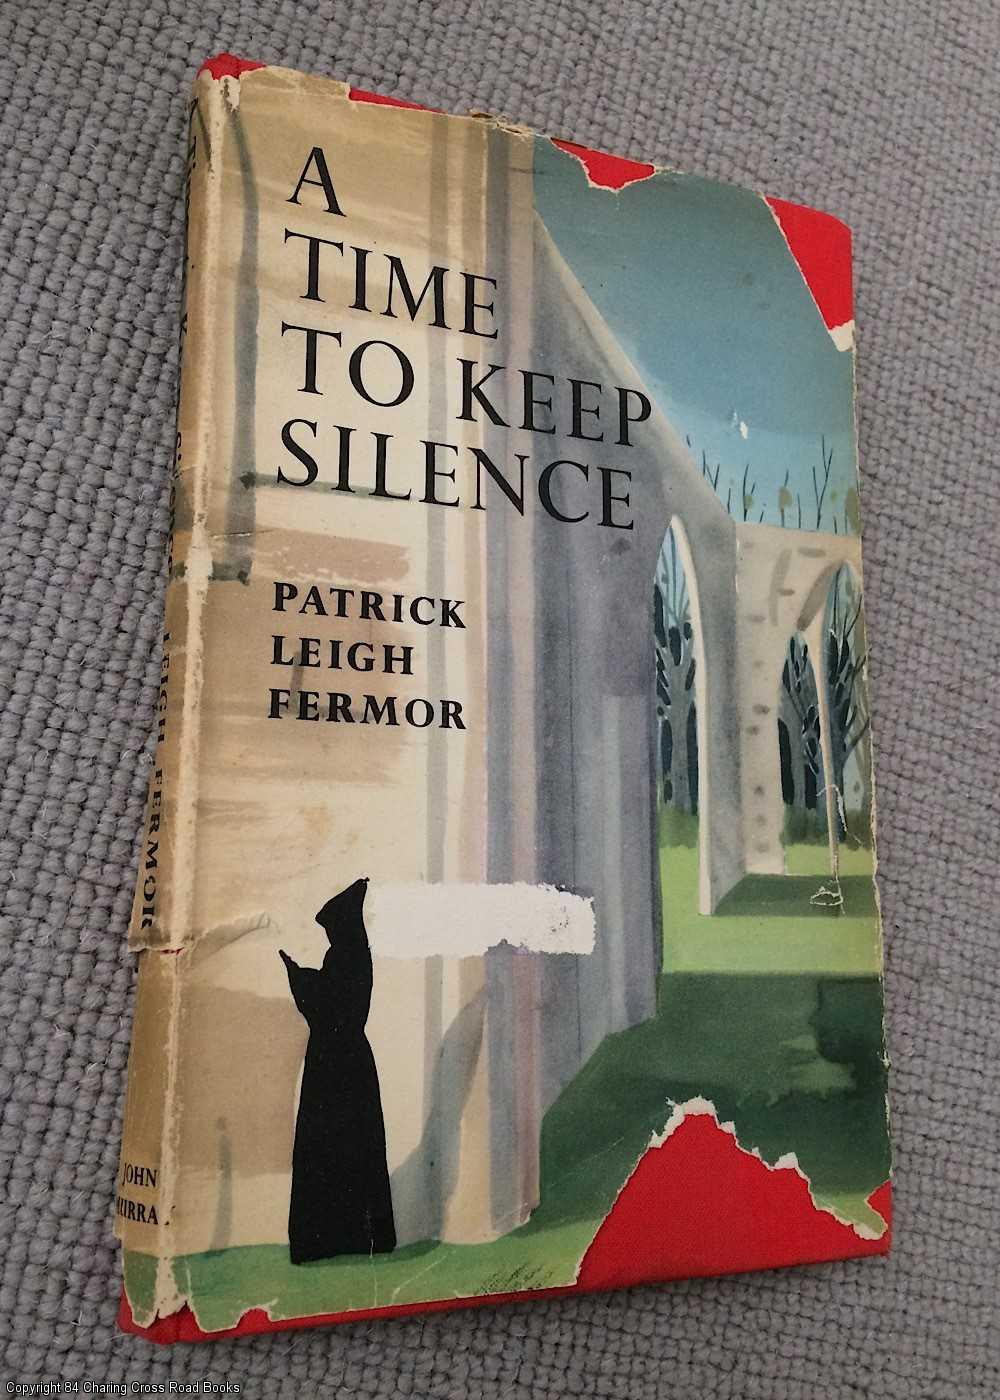 FERMOR, PATRICK LEIGH - A Time to Keep Silence